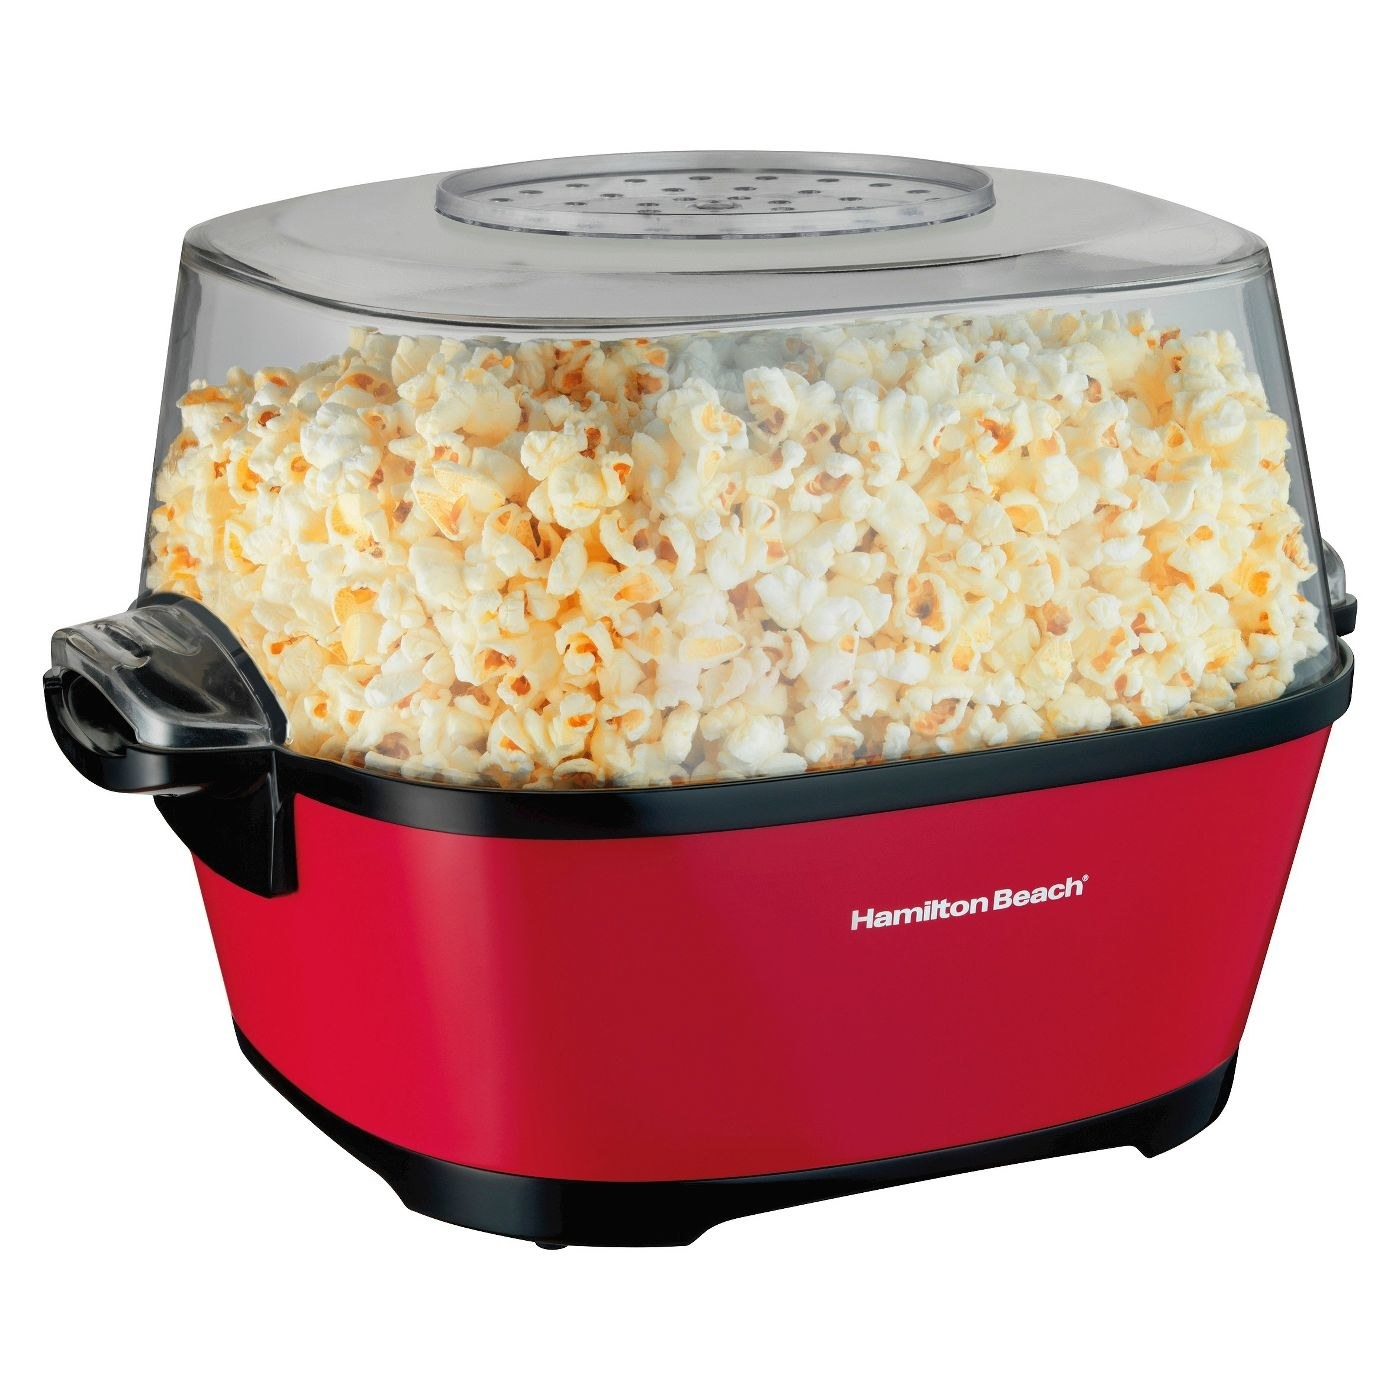 red hamilton beach electric popcorn maker